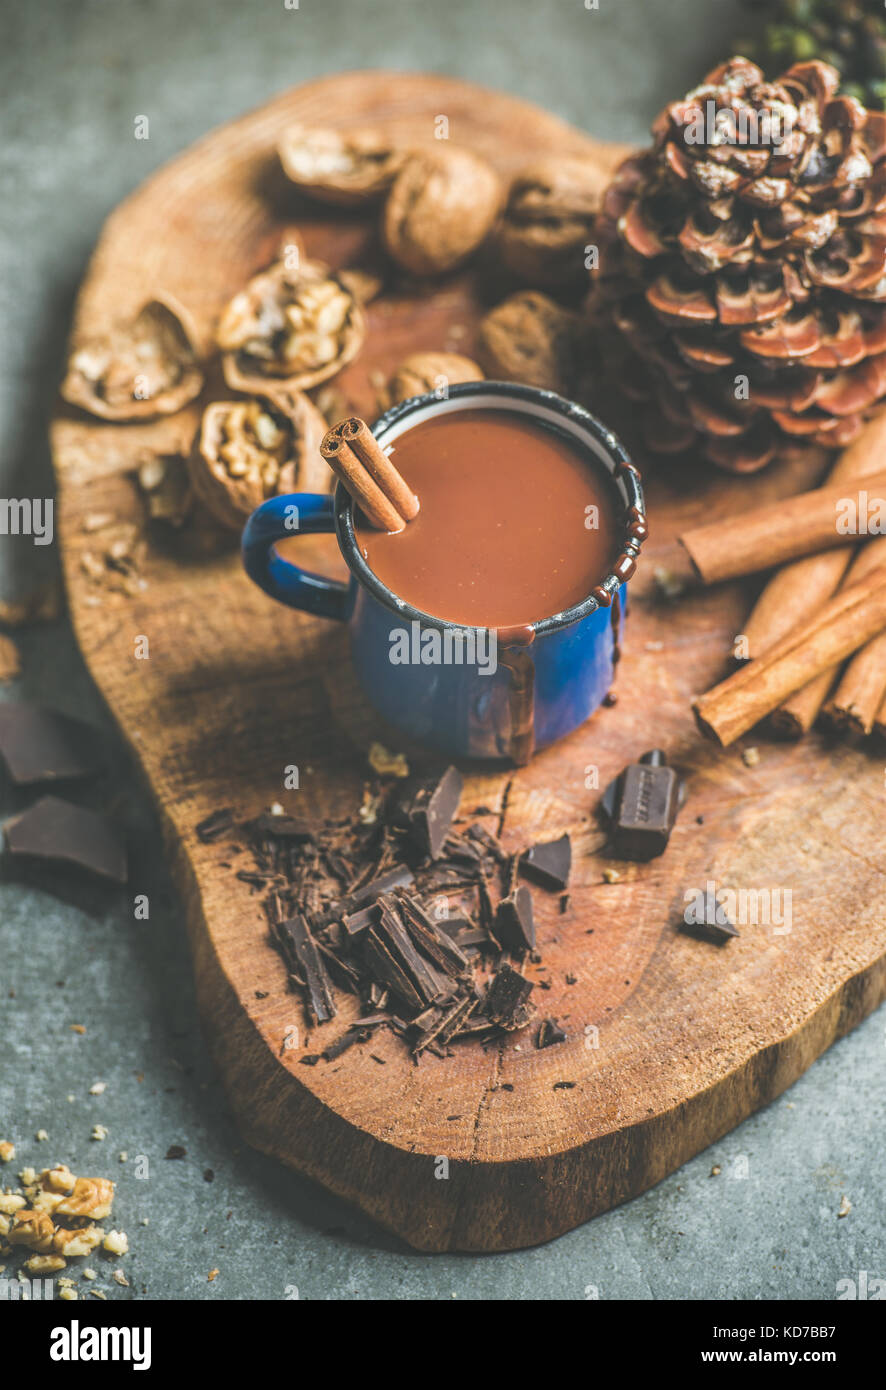 Rich winter hot chocolate with cinnamon and walnuts - Stock Image